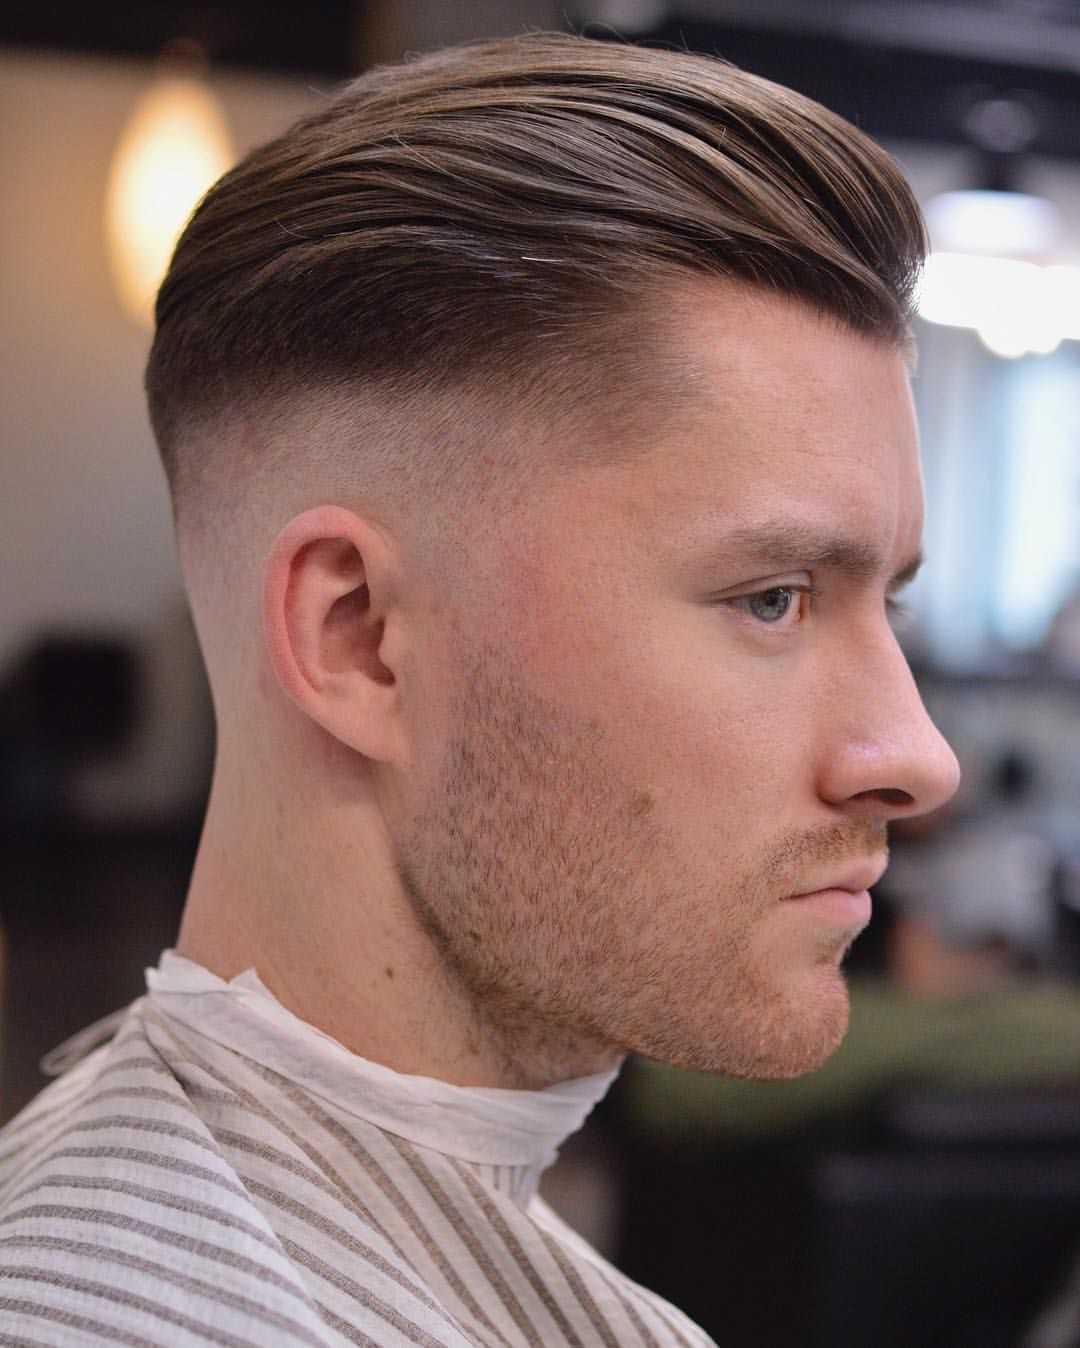 202 Me Gusta 15 Comentarios Bryan Blackfishbry En Instagram 1 On The Sides Undercut And Slicked Back On T Hair Styles Hairstyles Haircuts Fade Haircut